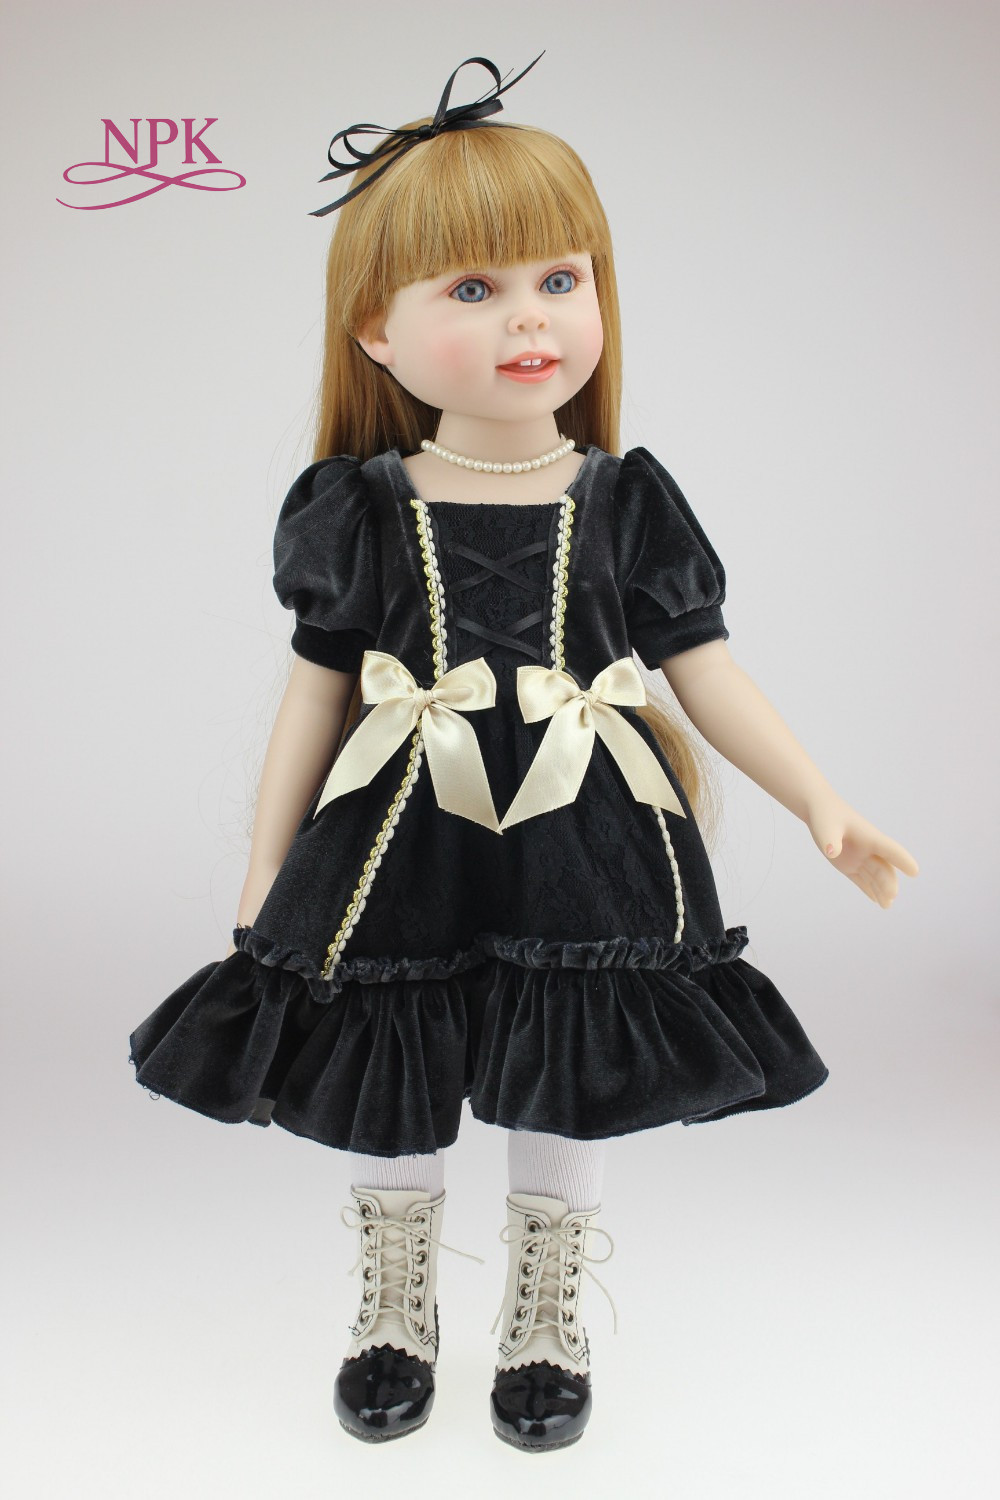 NPK 18inch Beautiful Princess BJD doll SD DOLL with dress for girls toys bonecas brinquedo menina